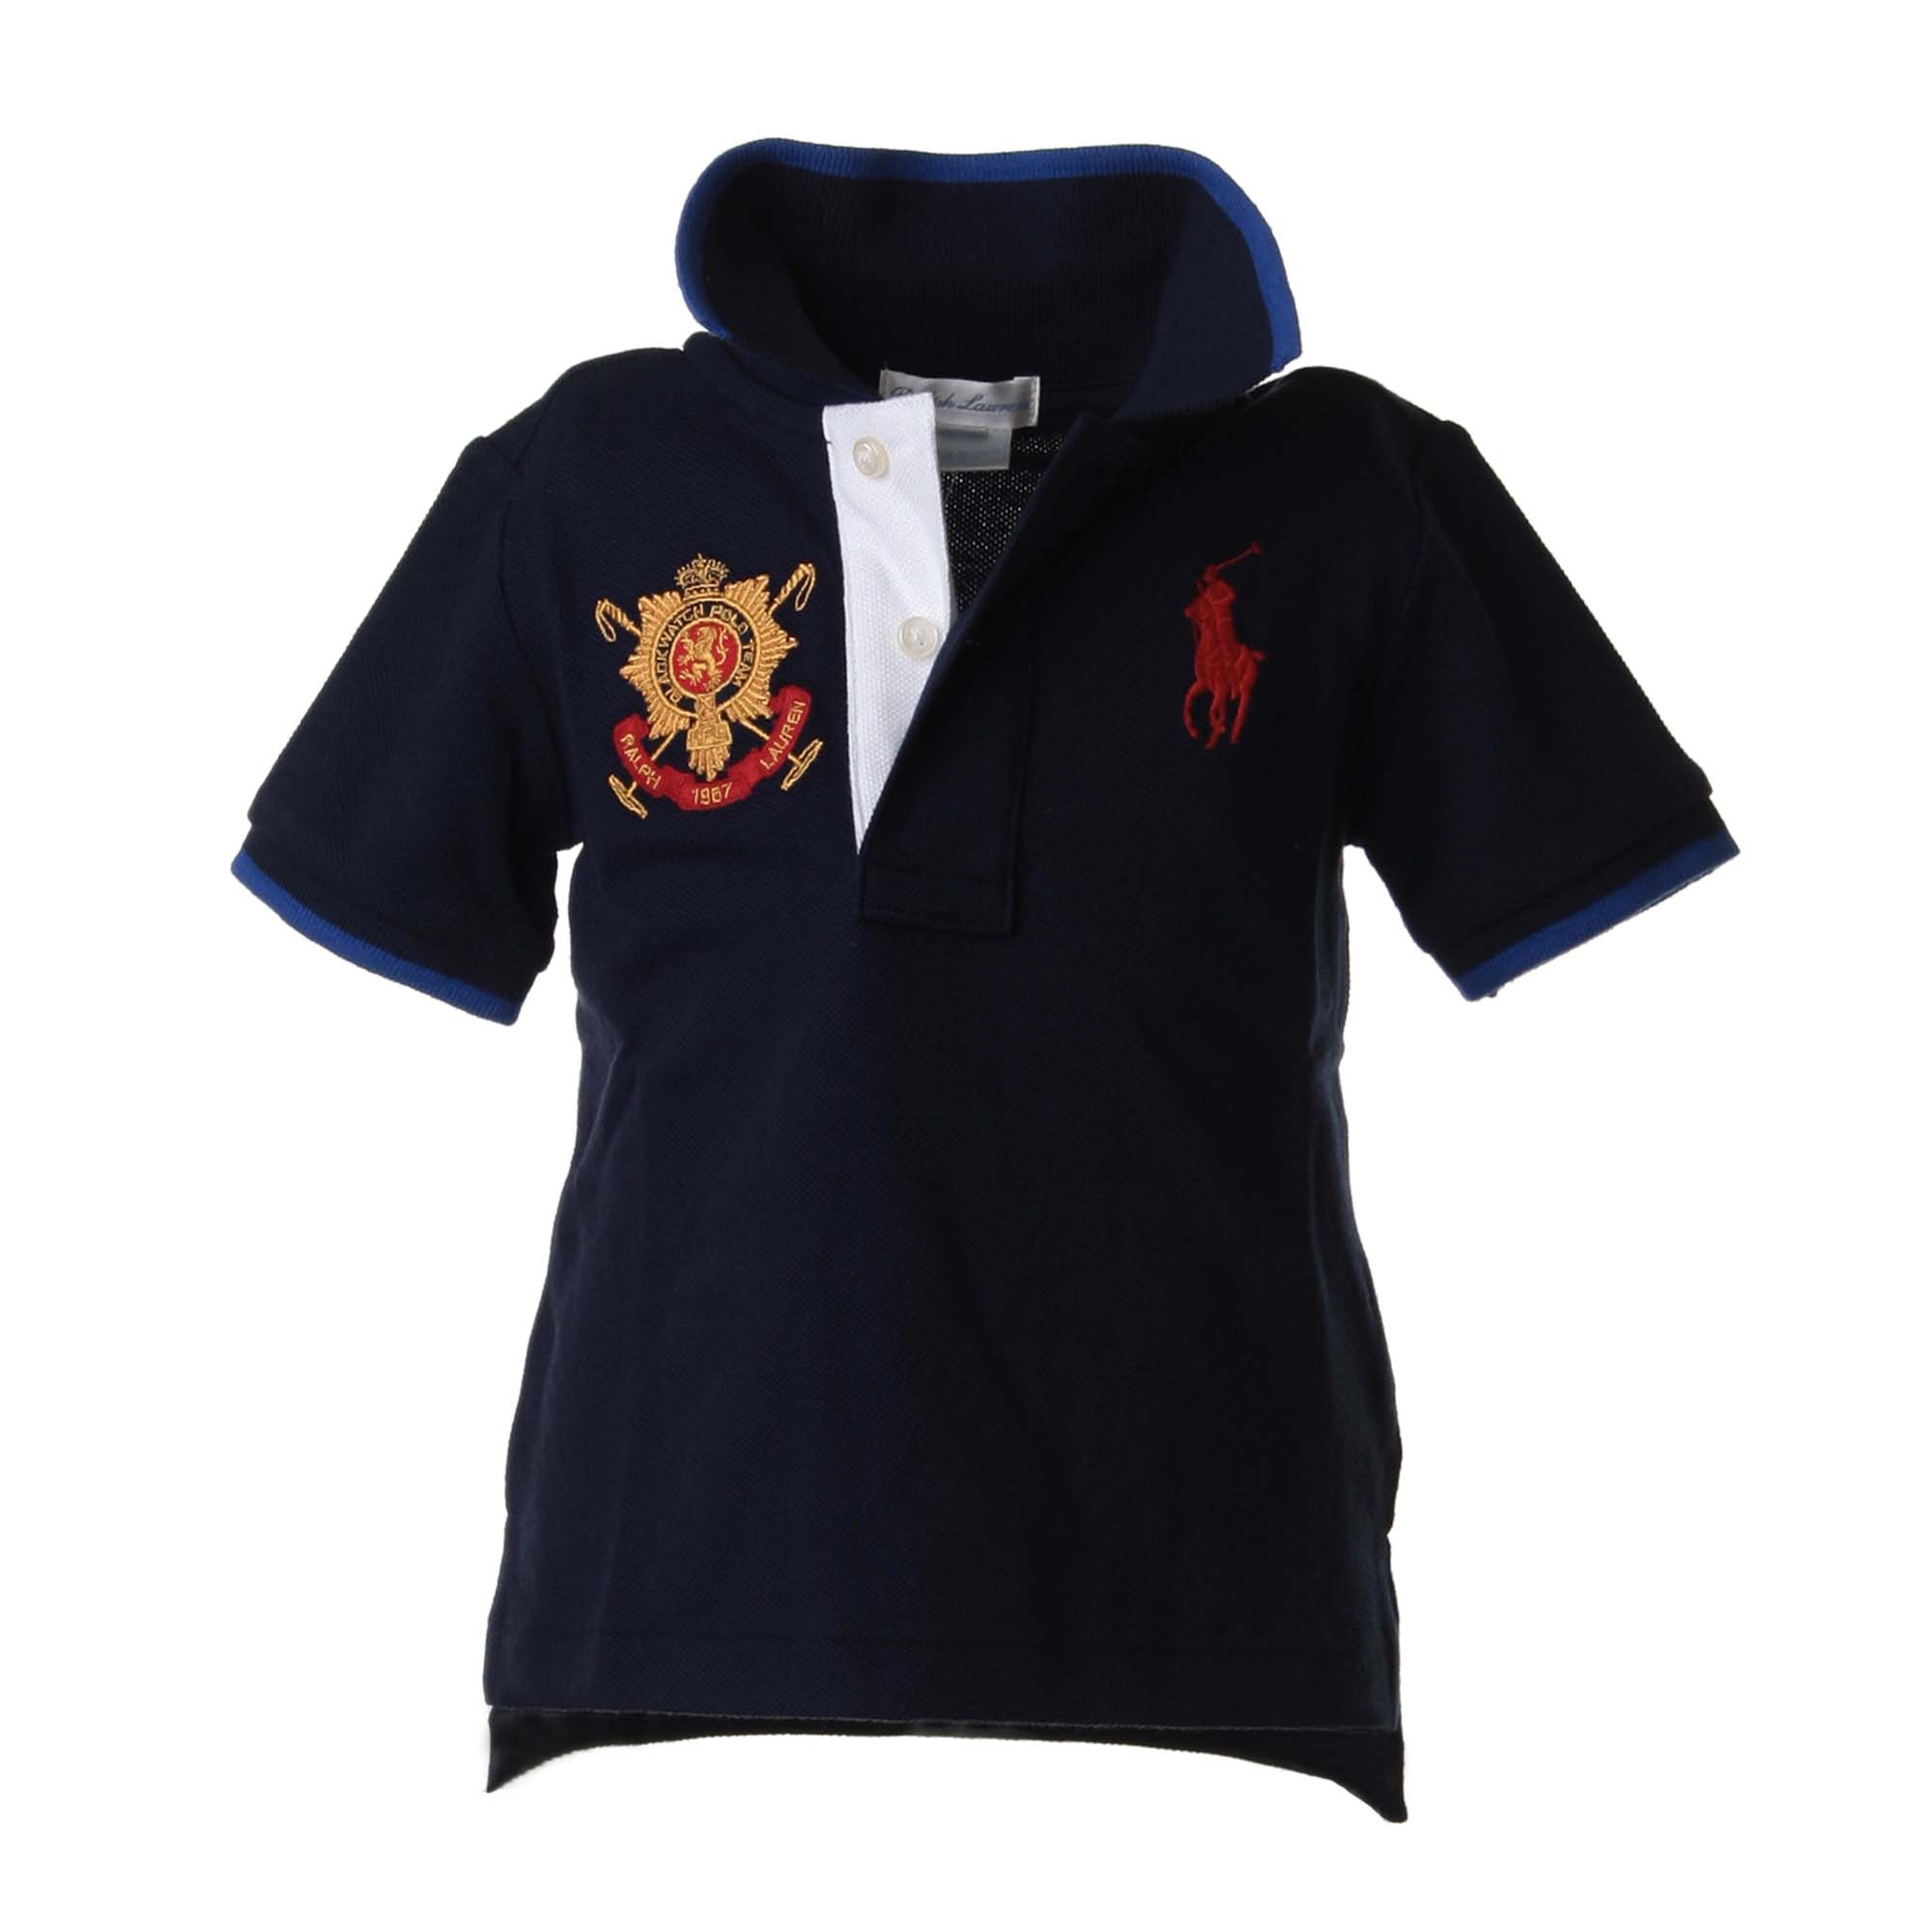 d79781dba Ralph Lauren - Big Pony   Logo Polo Kids Navy - annameglio.com shop ...